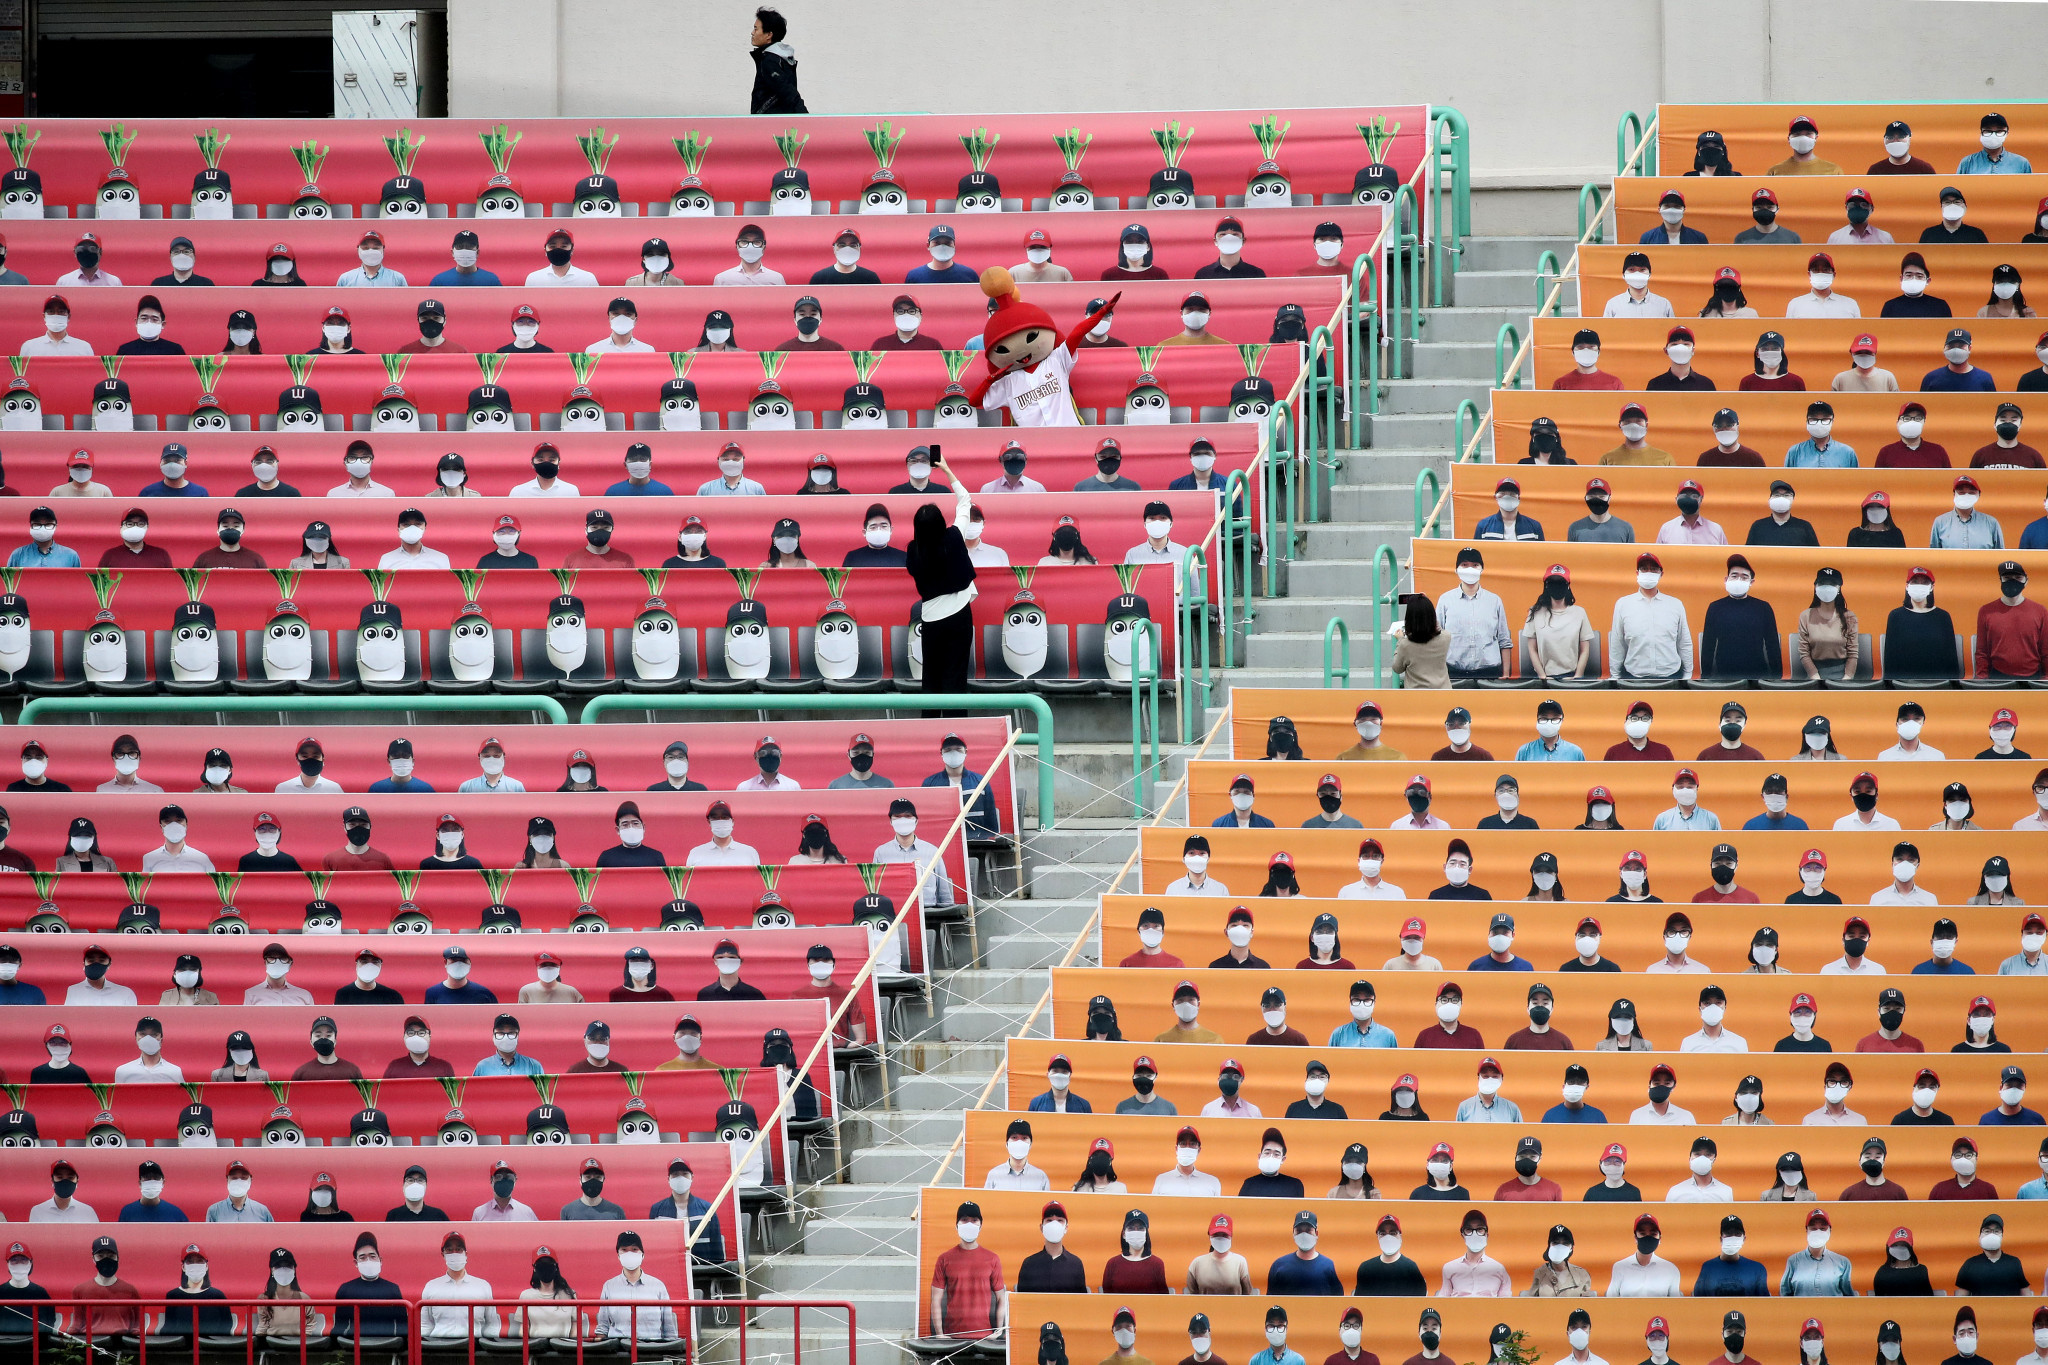 Baseball matches have resumed in South Korea but in empty stadiums ©Getty Images